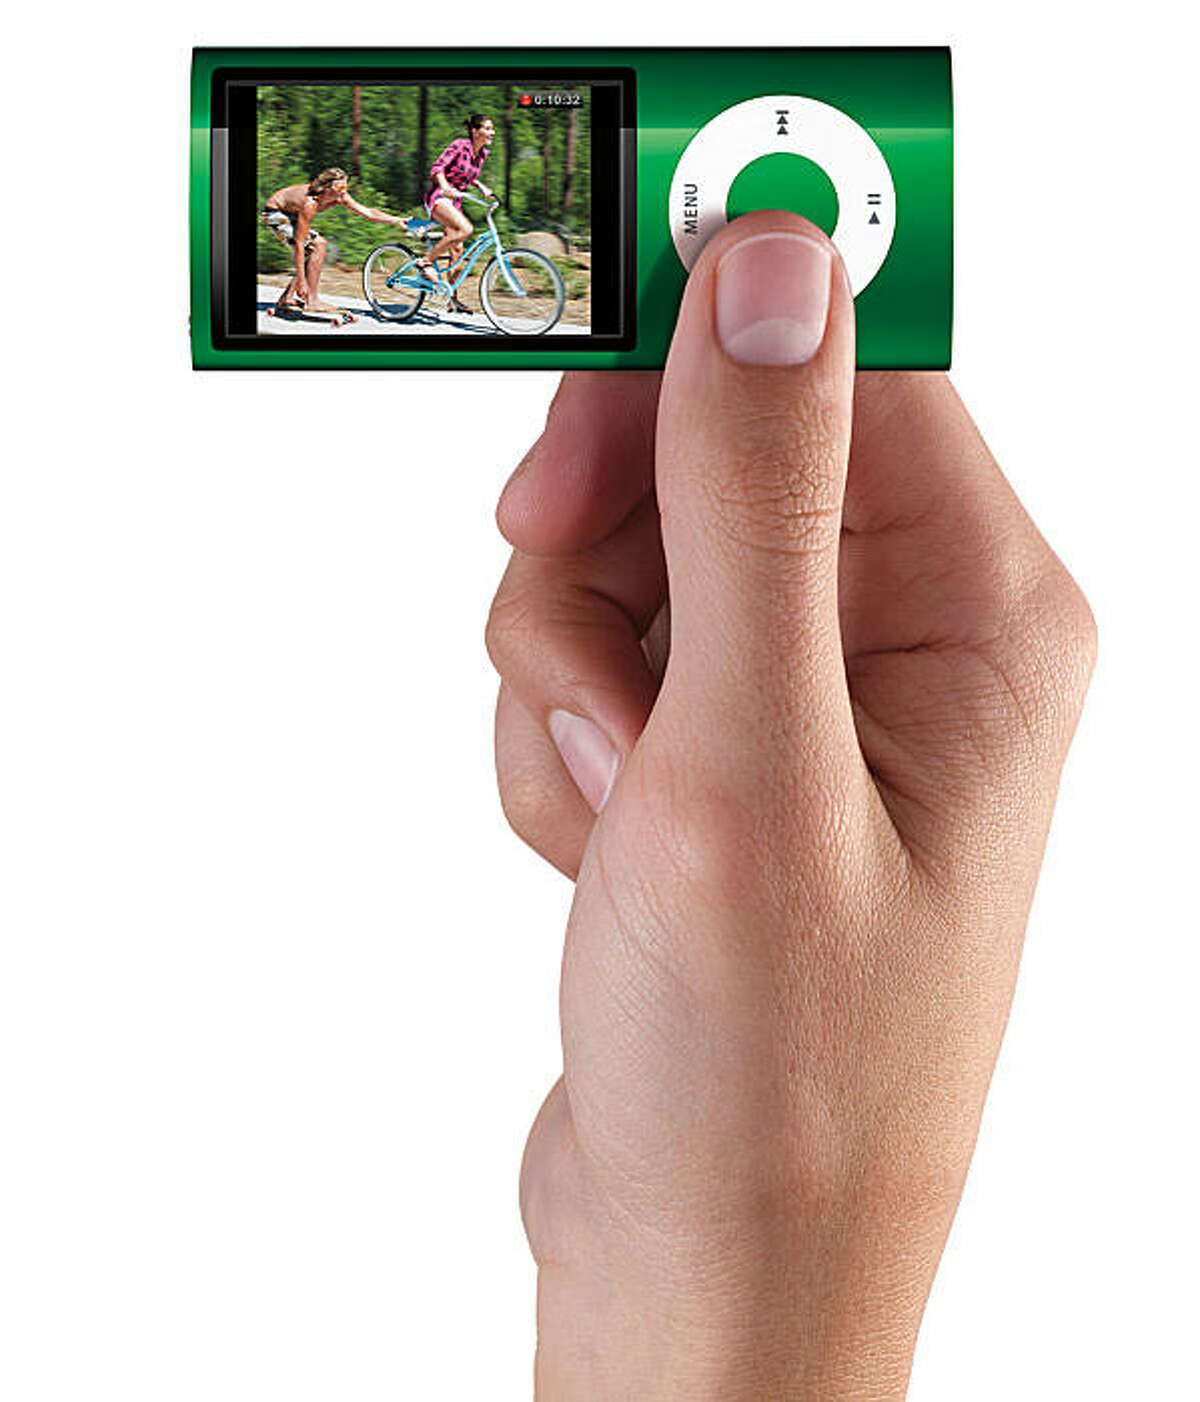 product shot of apple computer's newest ipod nano that shoots video.